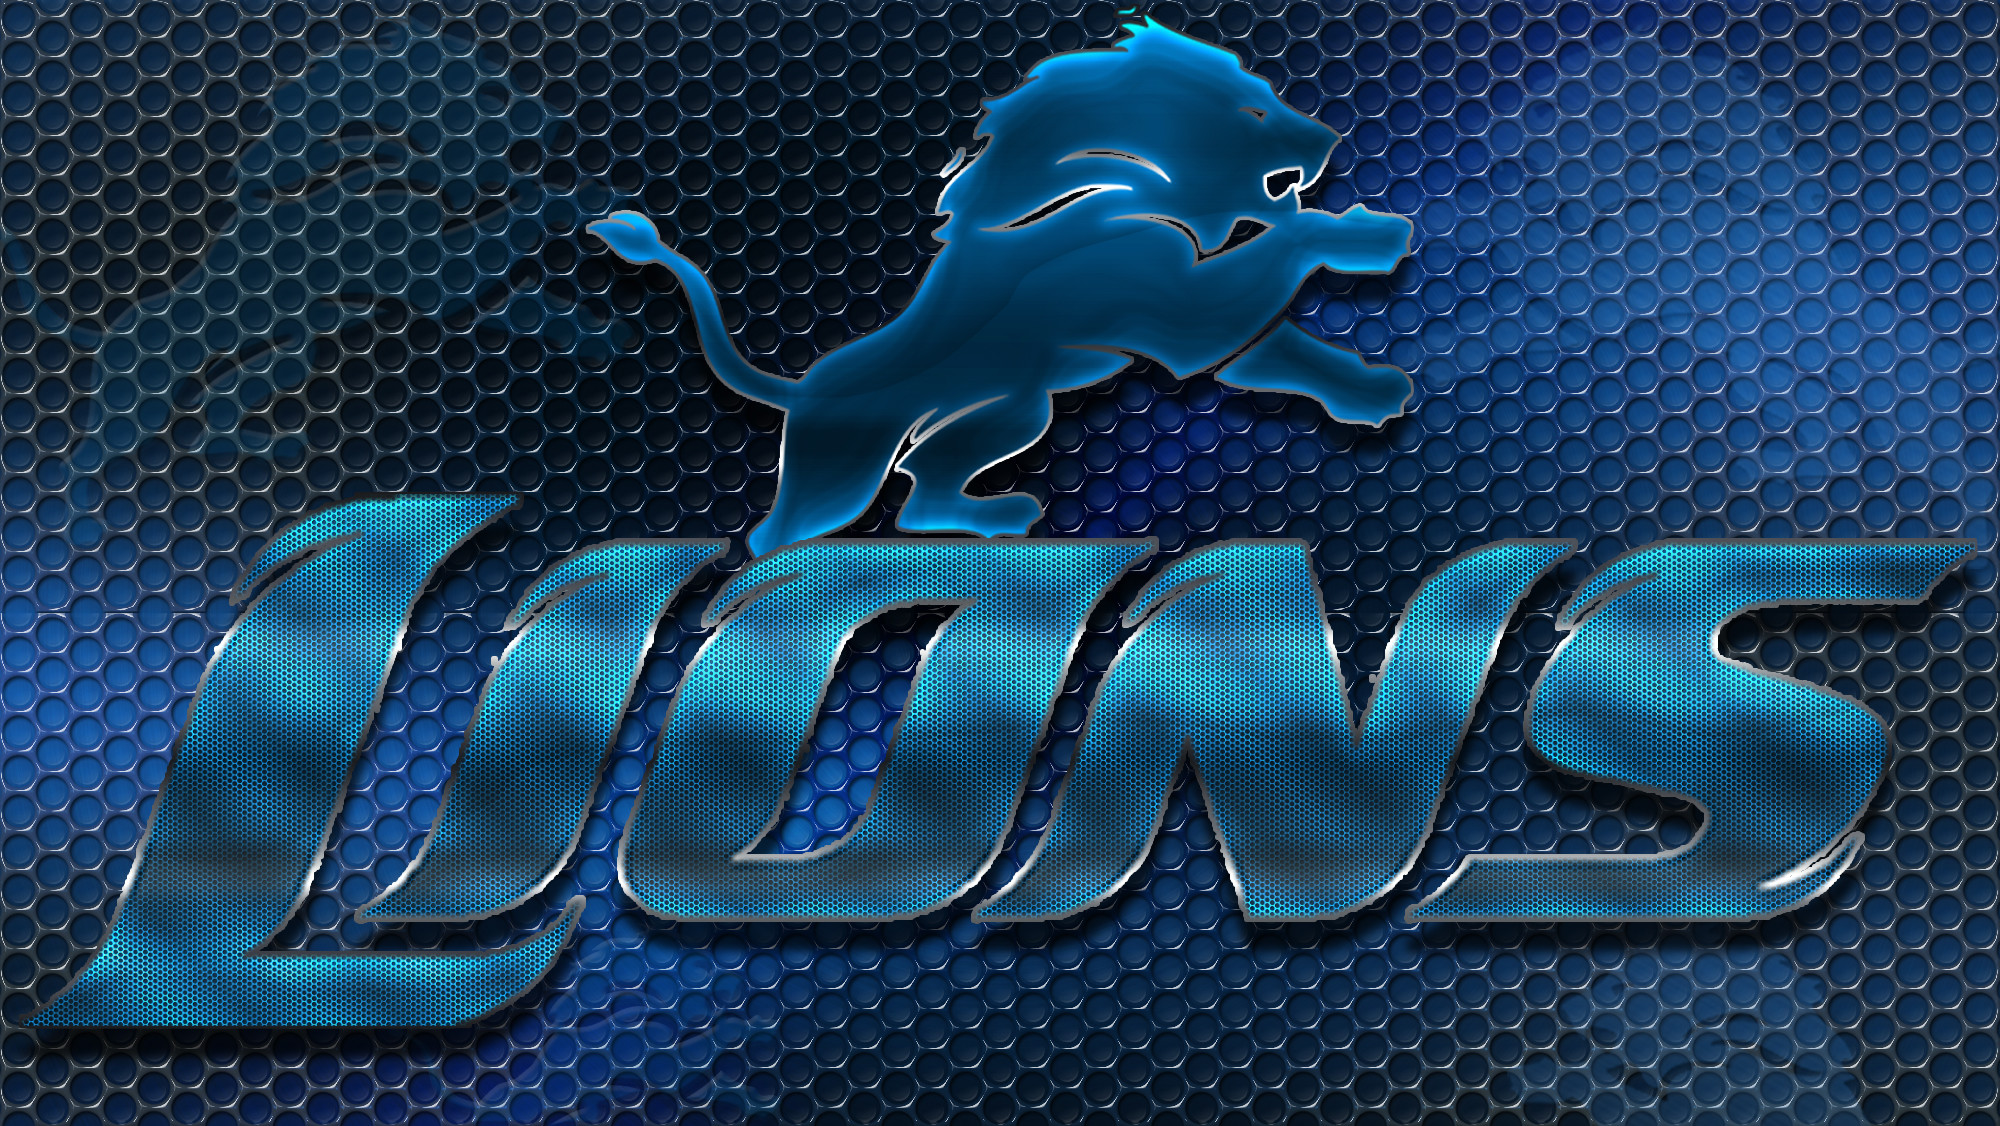 2000x1126 Detroit Lions images Detroit Lions Heavy Metal 16x9 Text N Logo Wallpaper  HD wallpaper and background photos